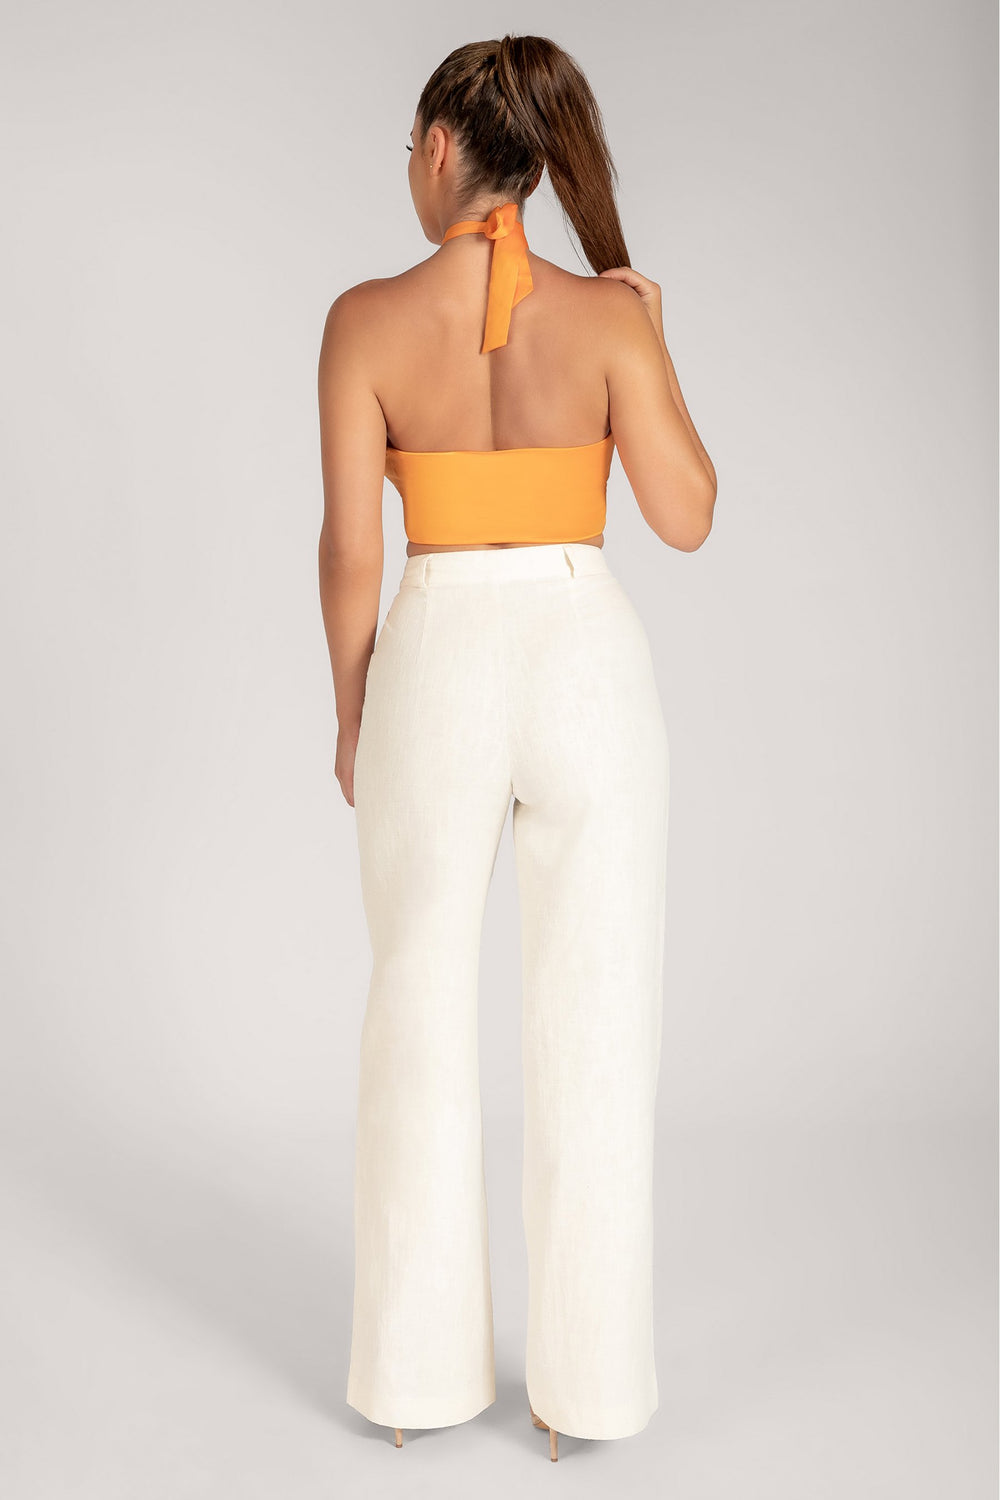 Ines Wrap Halter Neck Crop Top - Tangerine